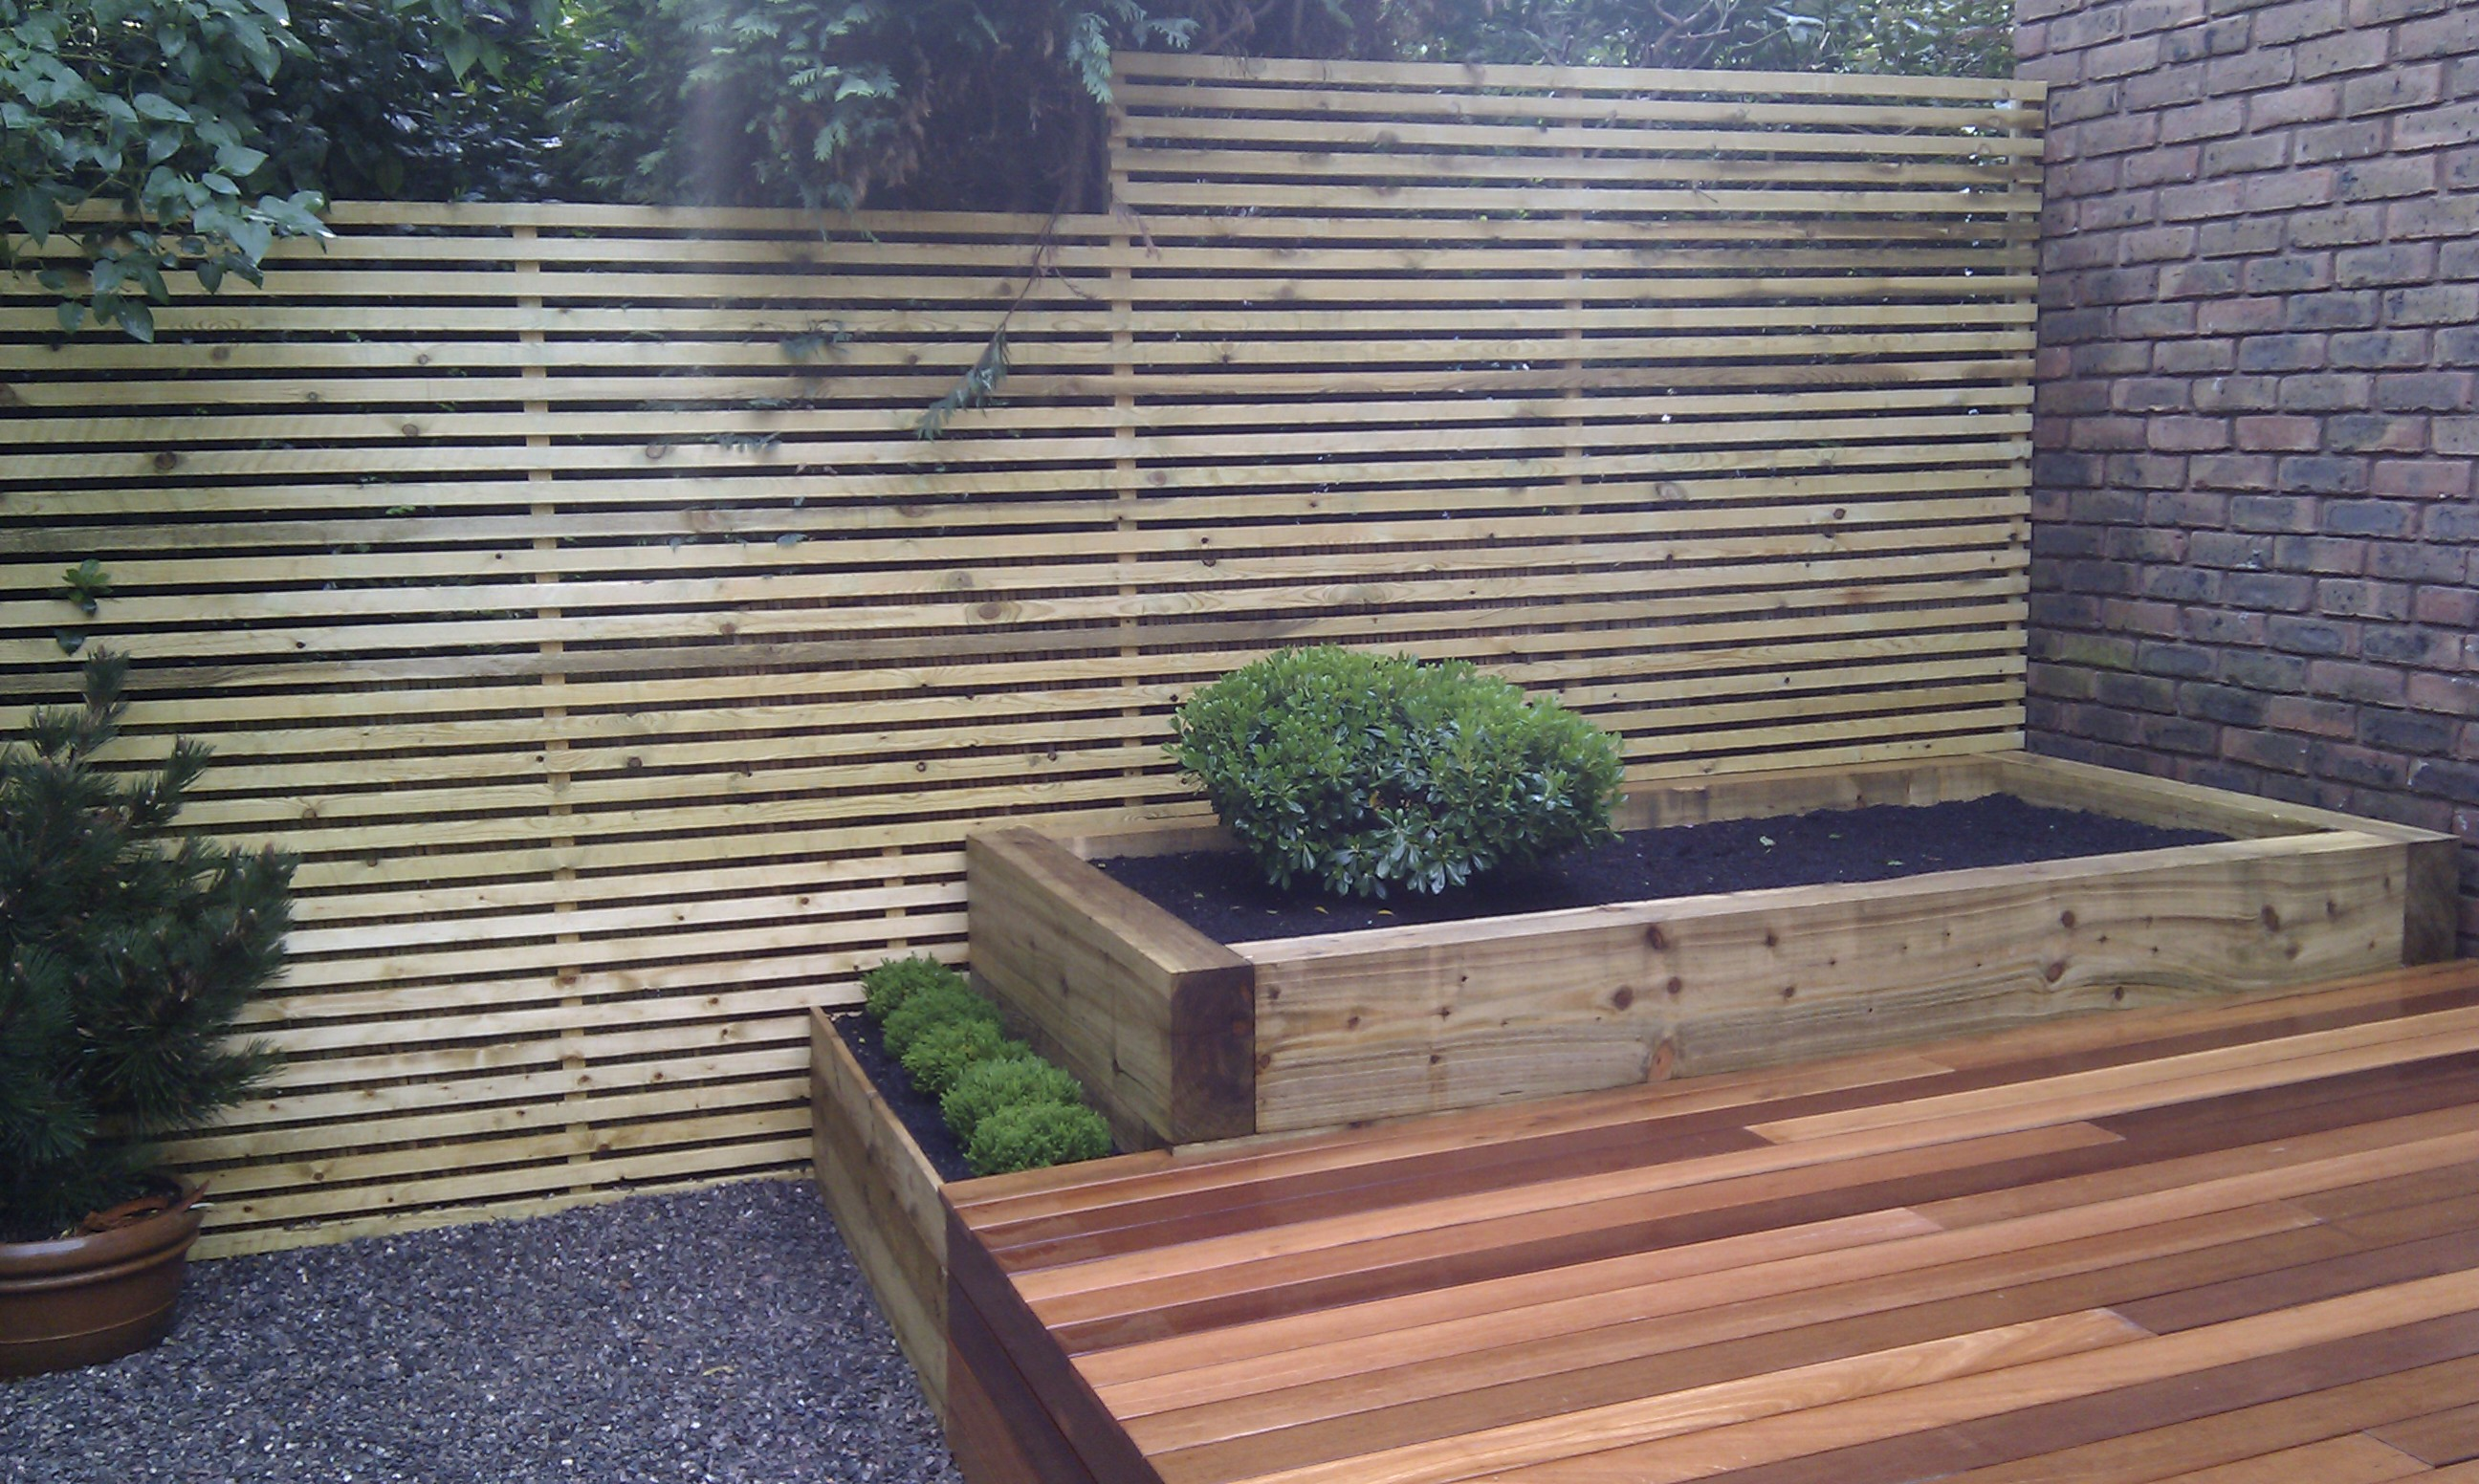 hardwood decking minimalist limestone chippings privacy screen south east london (16)